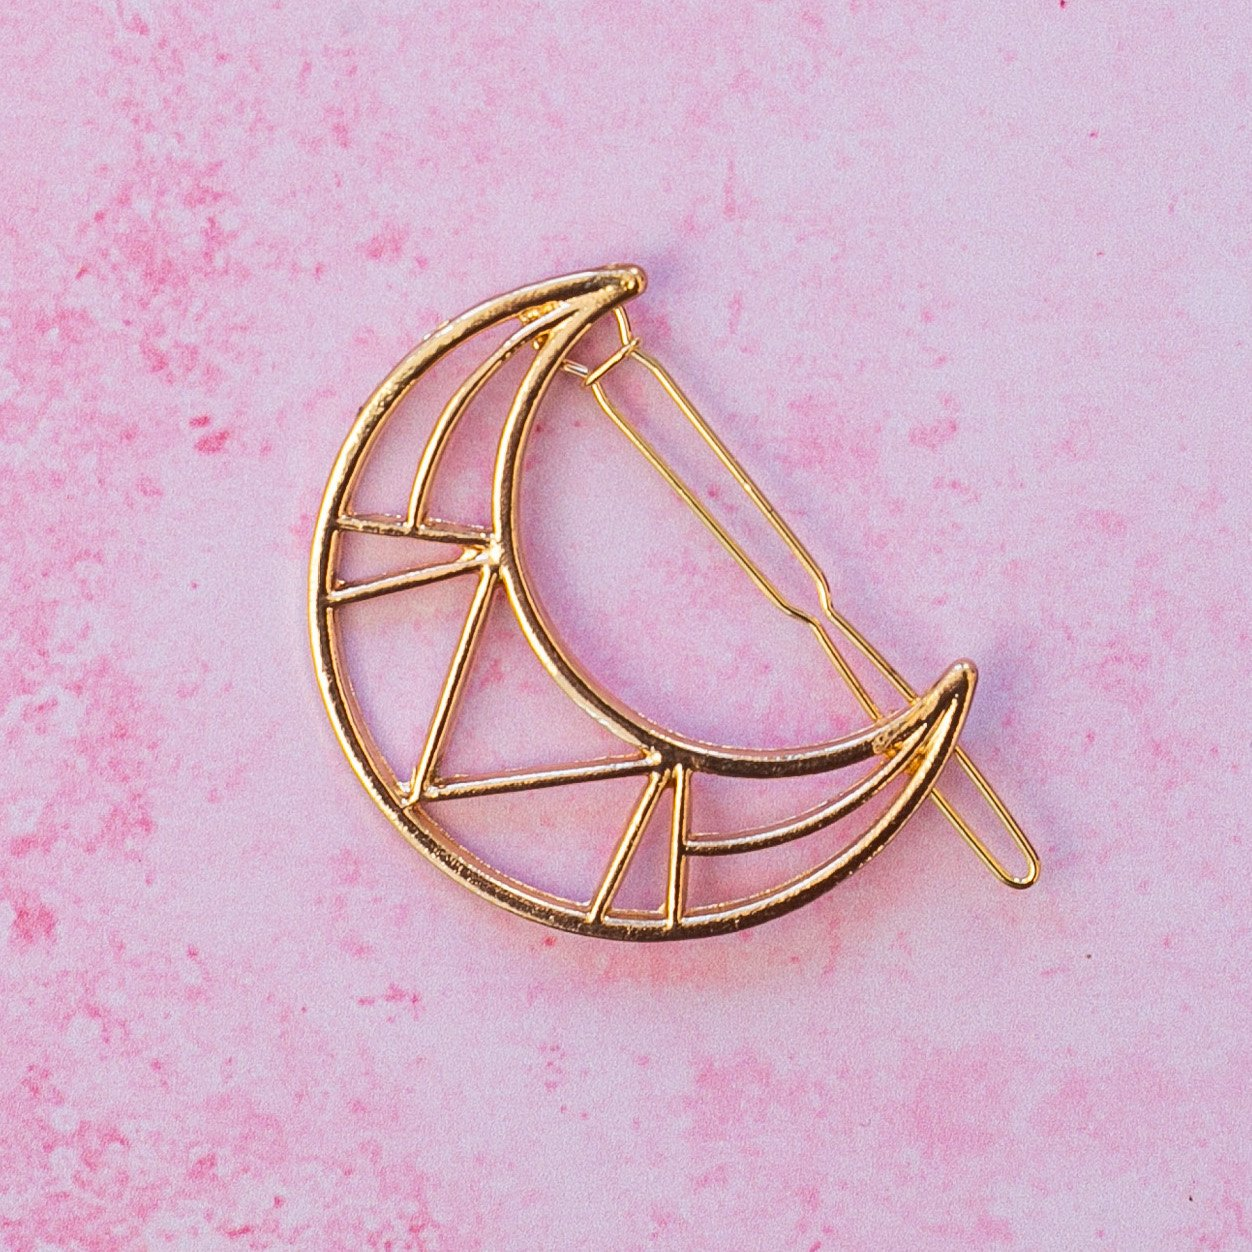 Geometric Crescent Moon Hair Grip (Gold Plated)